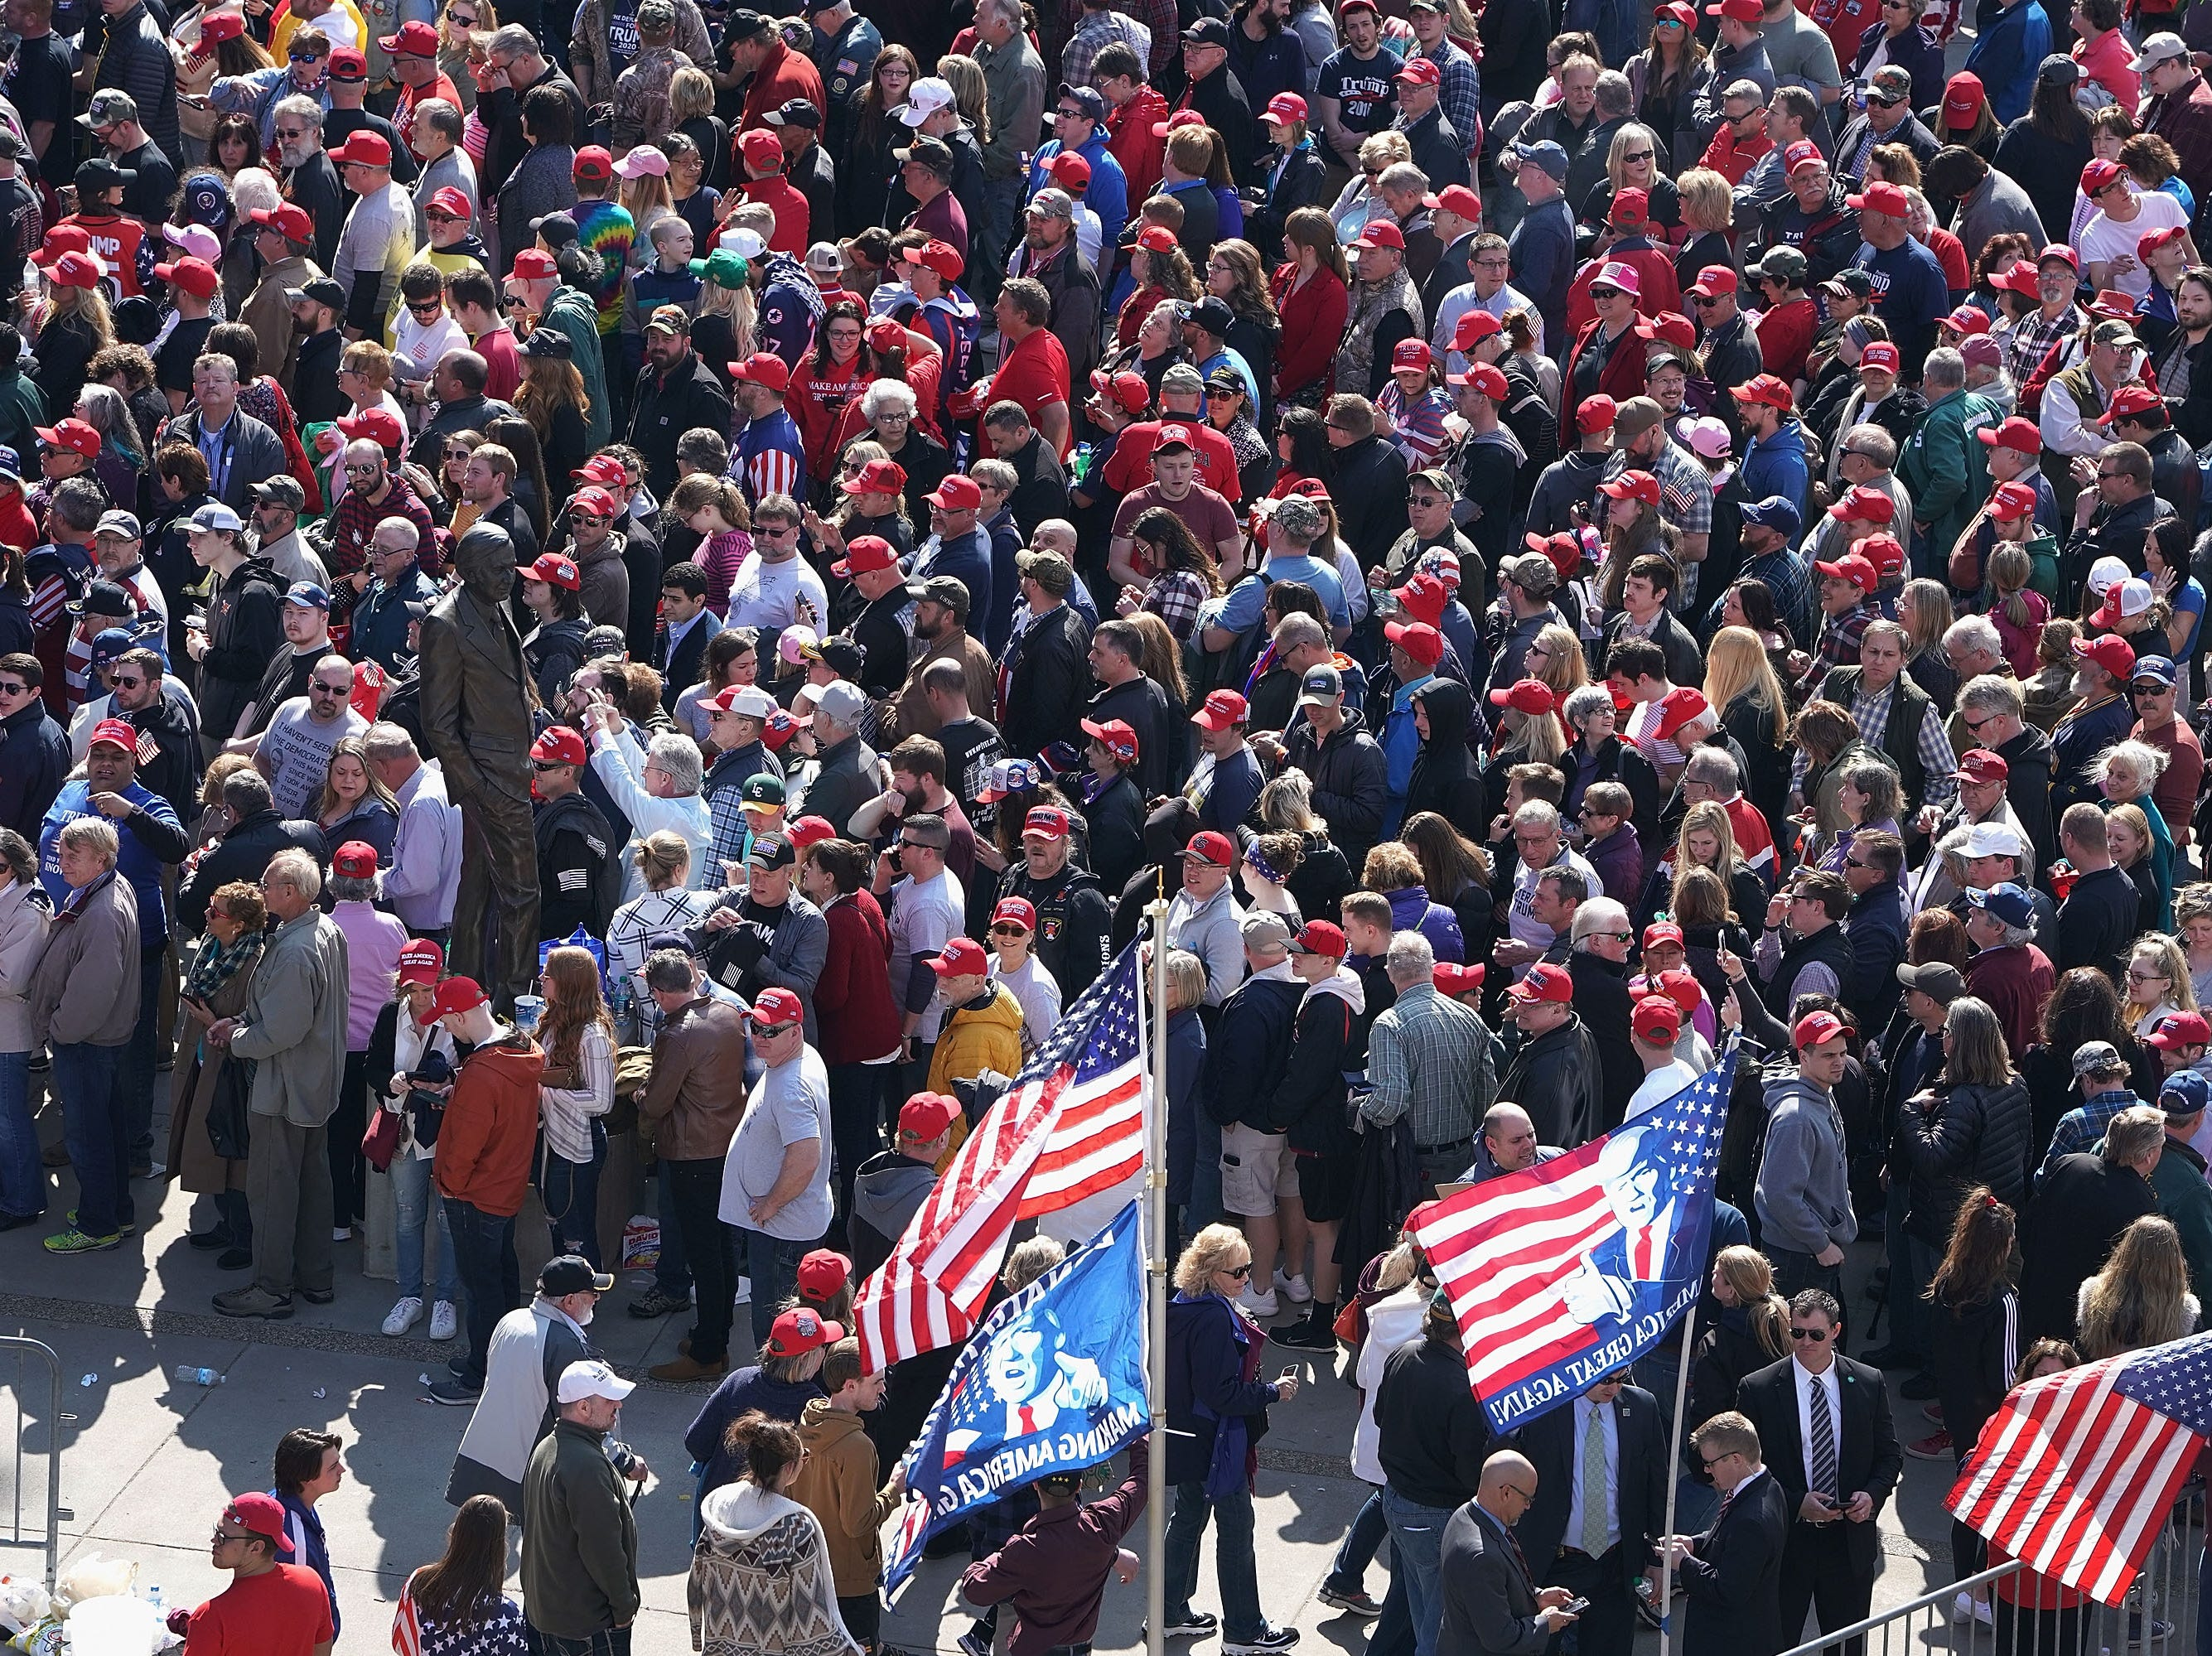 Supporters line up outside of the Van Andel Arena for a rally with President Donald Trump on March 28, 2019 in Grand Rapids, Michigan. Grand Rapids was the final city Trump visited during his 2016 campaign.